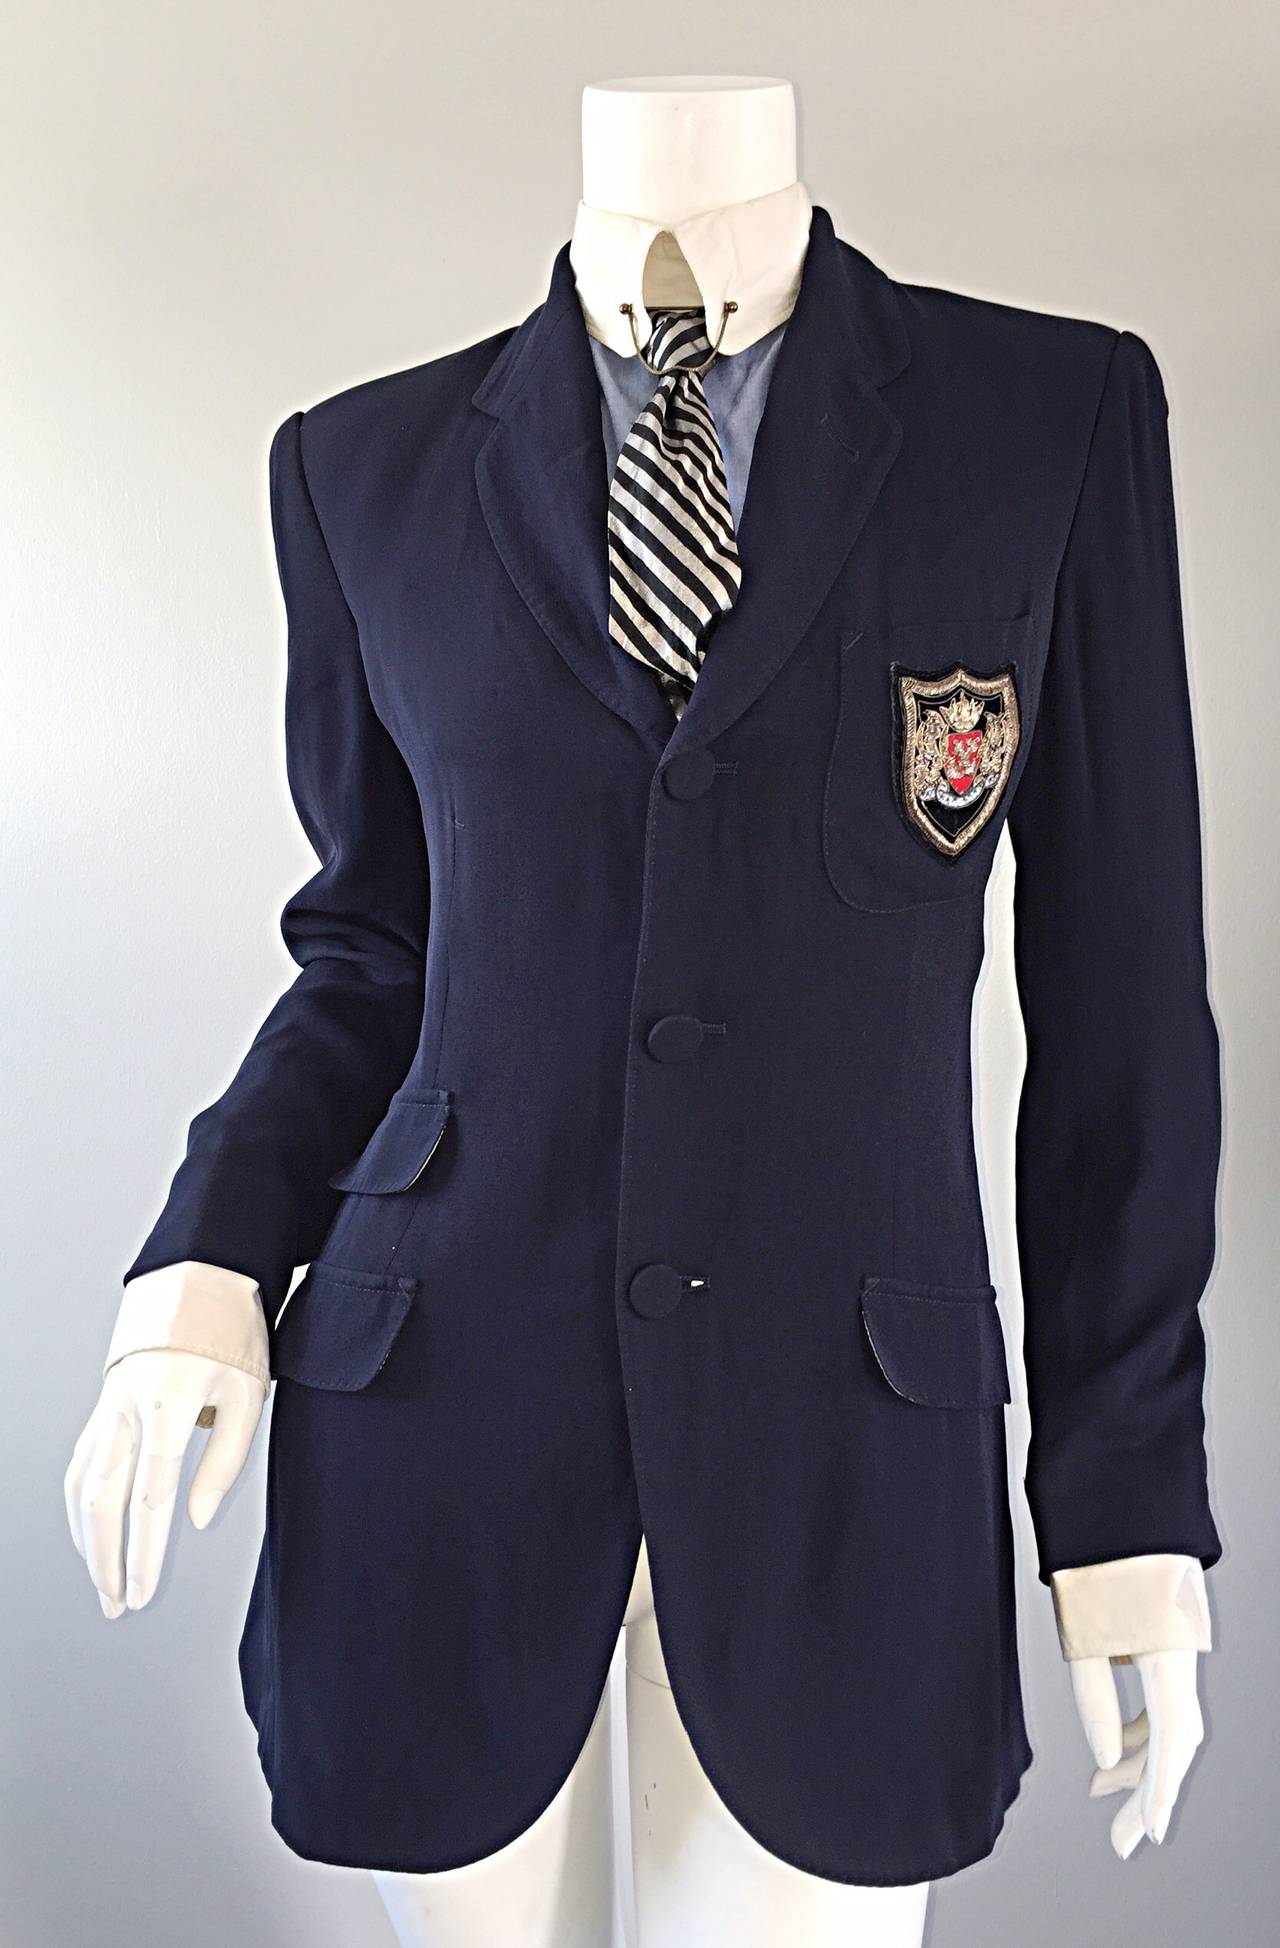 Extremely Rare Vintage Jean Paul Gaultier ' Schoolboy ' All - In - One Blazer 2